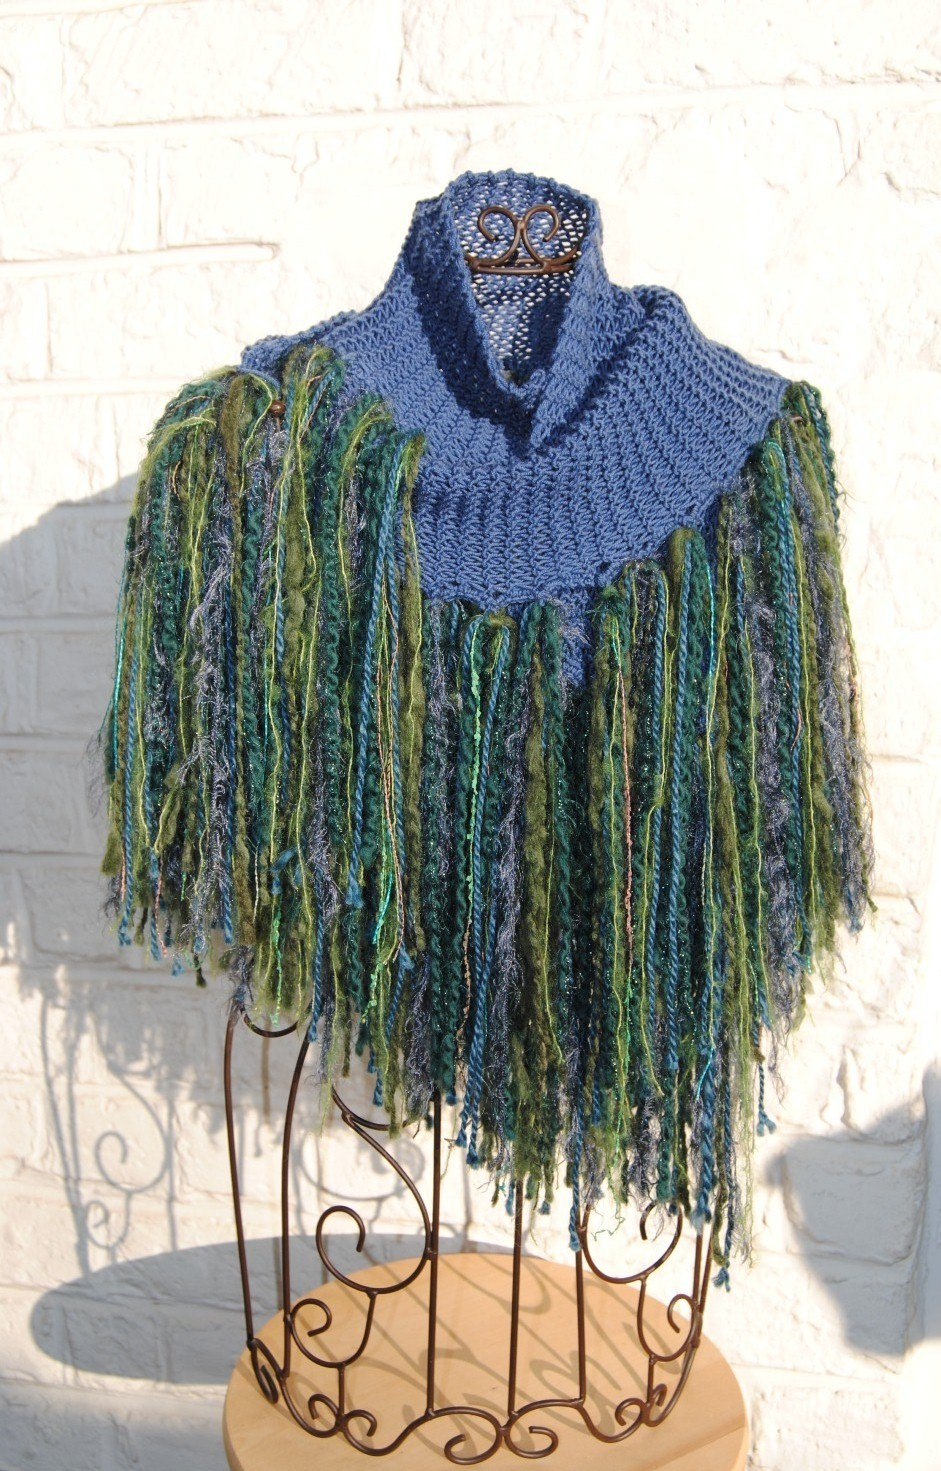 Free Crochet Pattern For Boa Scarf : CROCHET BOA SCARF PATTERN Crochet Patterns